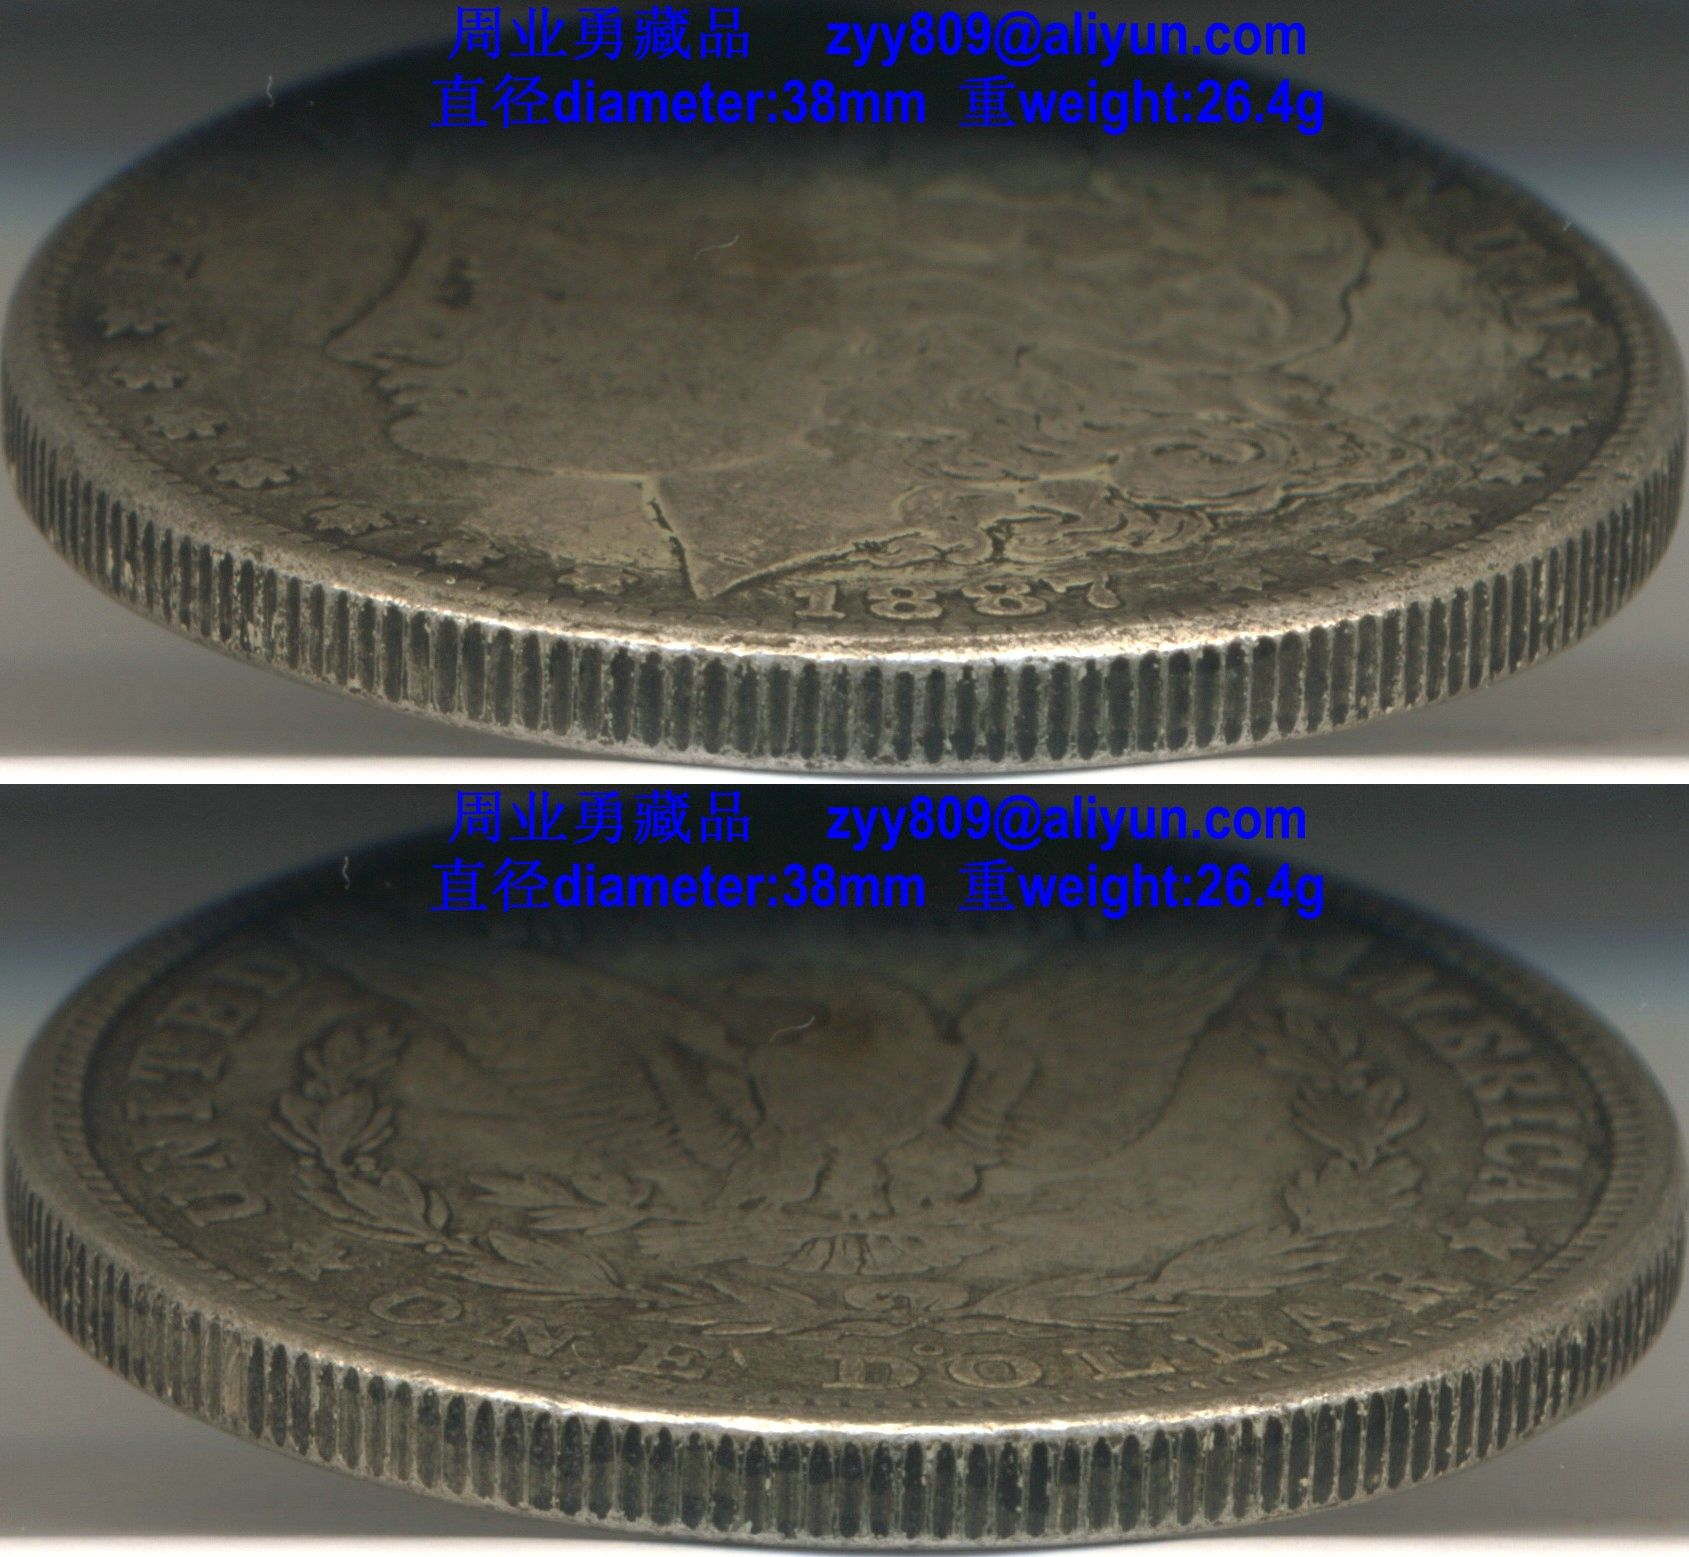 1887 Morgan Silver Dollar - Side Legends: Obverse: E·PLURIBUS·UNUM, 1887, Reverse: UNITED STATES OF AMERICA, ONE DOLLAR, In God we trust